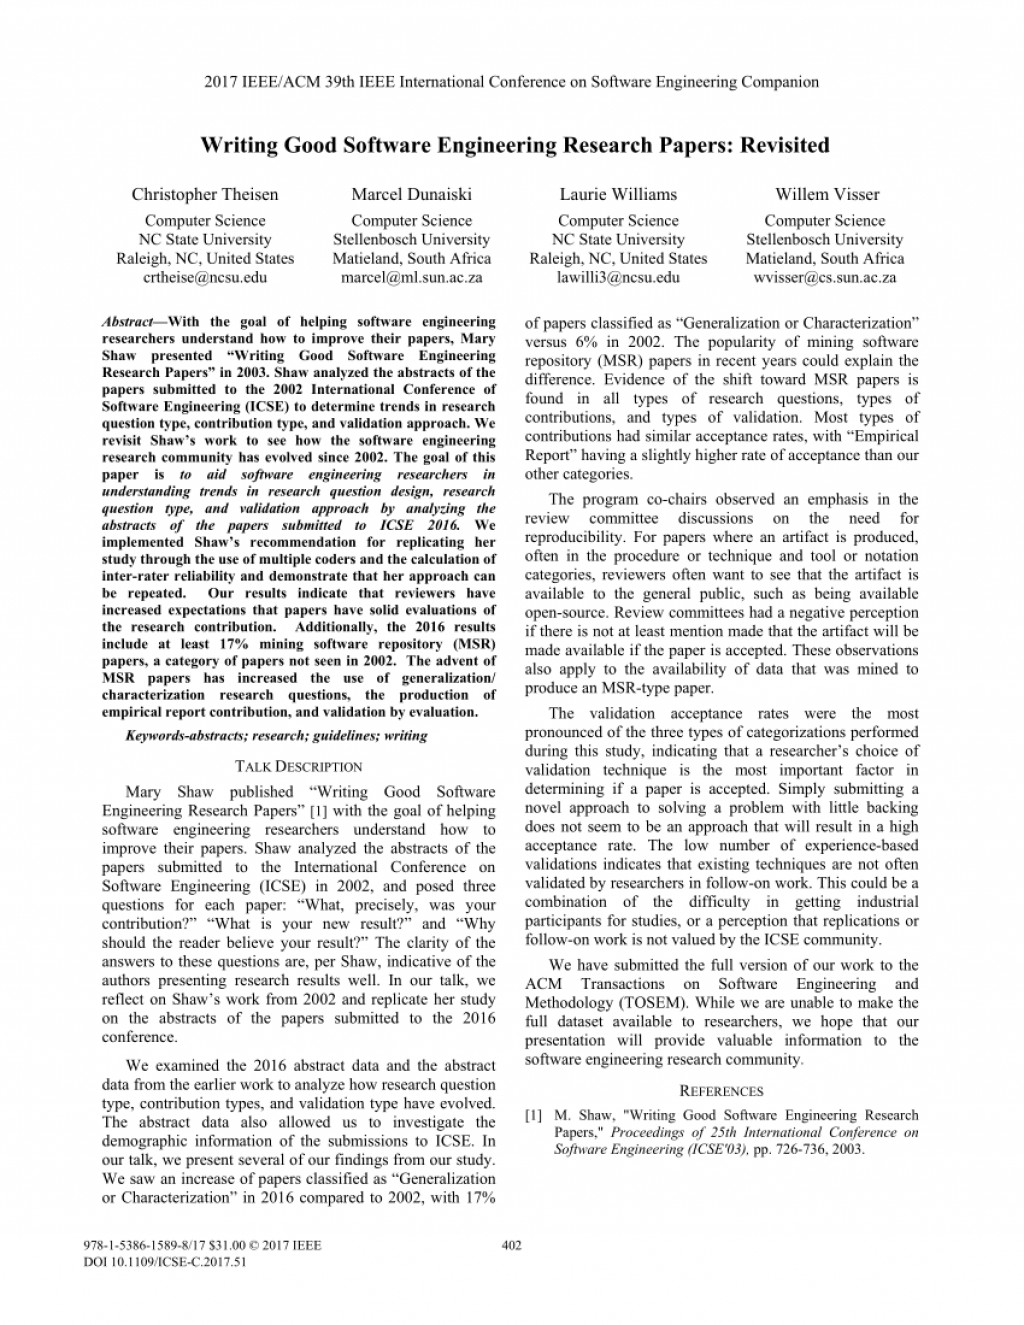 004 Ieee Researchs In Computer Science Largepreview Unusual Research Papers 2017 Large